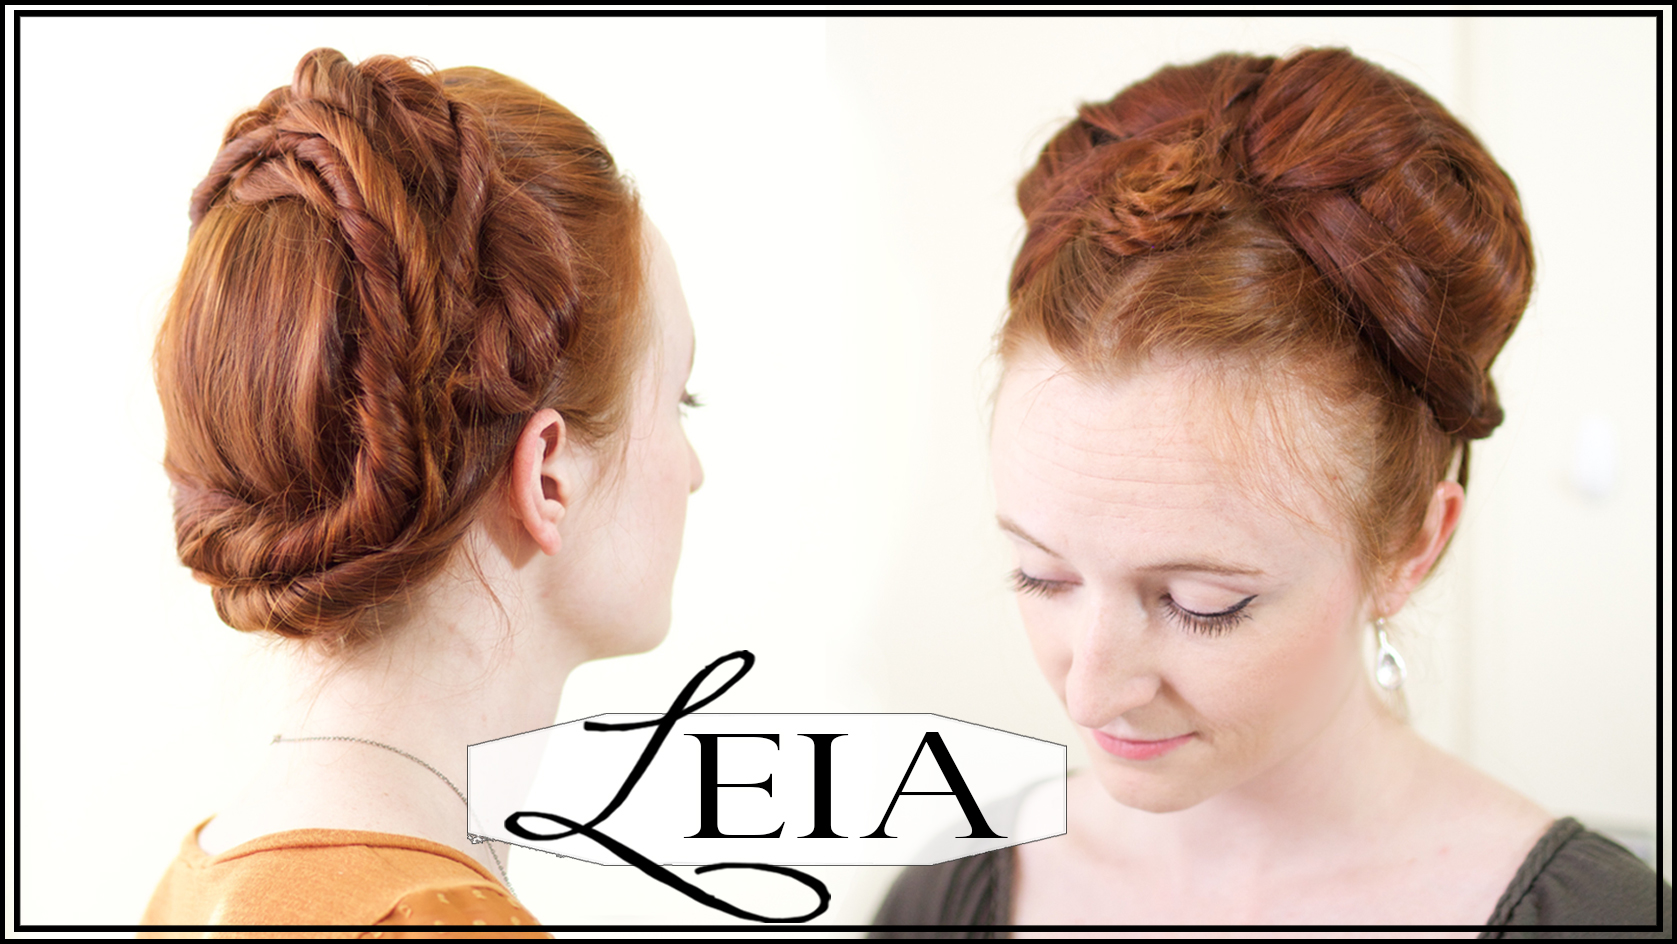 silvousplaits hairstyling | leia hairstyles in star wars: the force